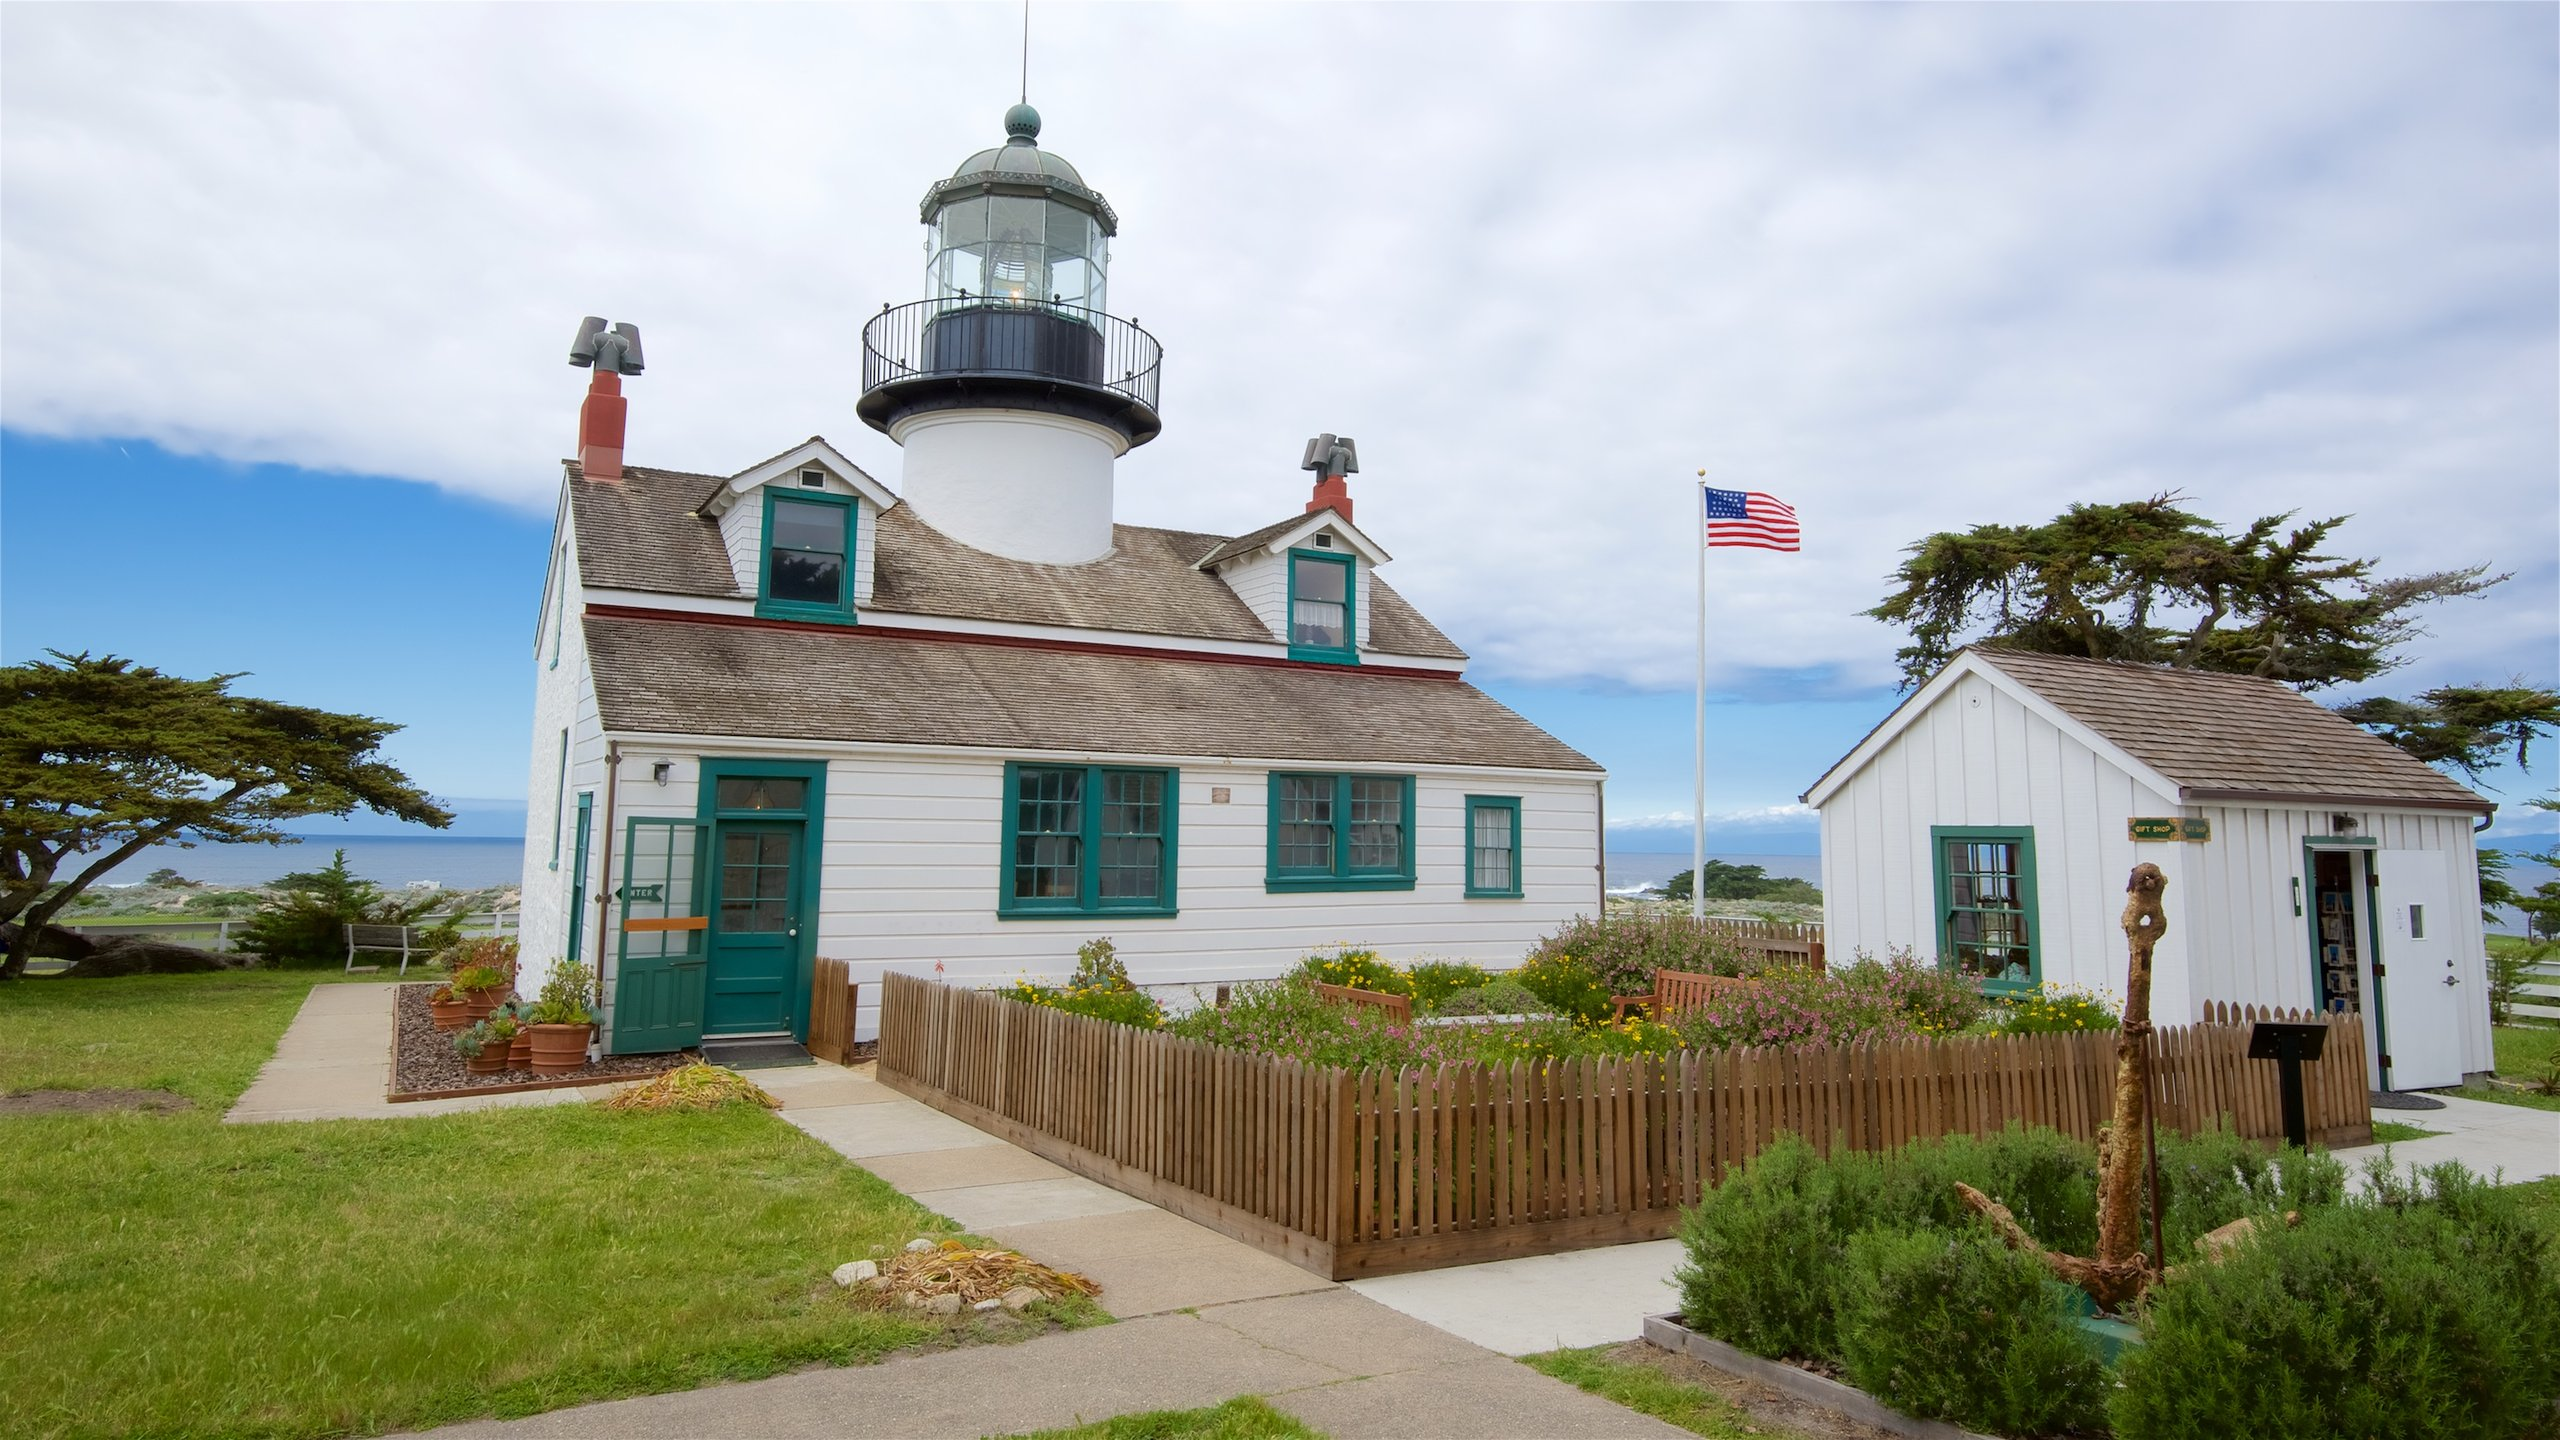 Excellent Top 10 Pet Friendly Hotels In Pacific Grove Ca 79 Dog Download Free Architecture Designs Scobabritishbridgeorg